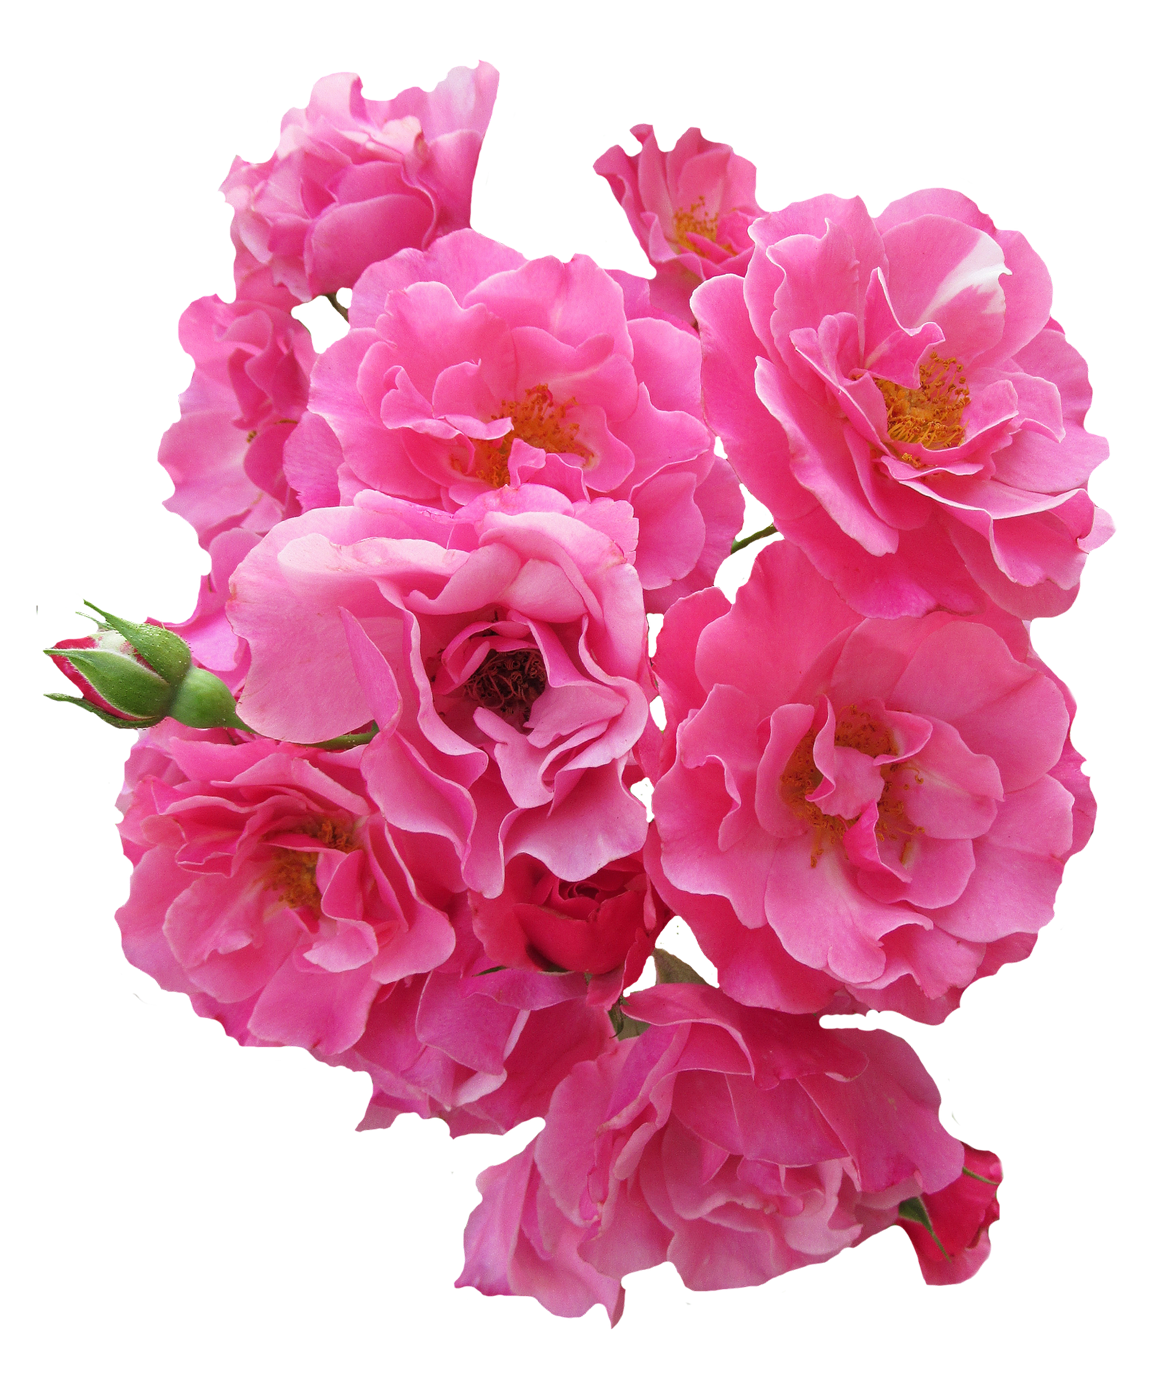 Bunch Pink Rose Flower Png Image Purepng Free Transparent Cc0